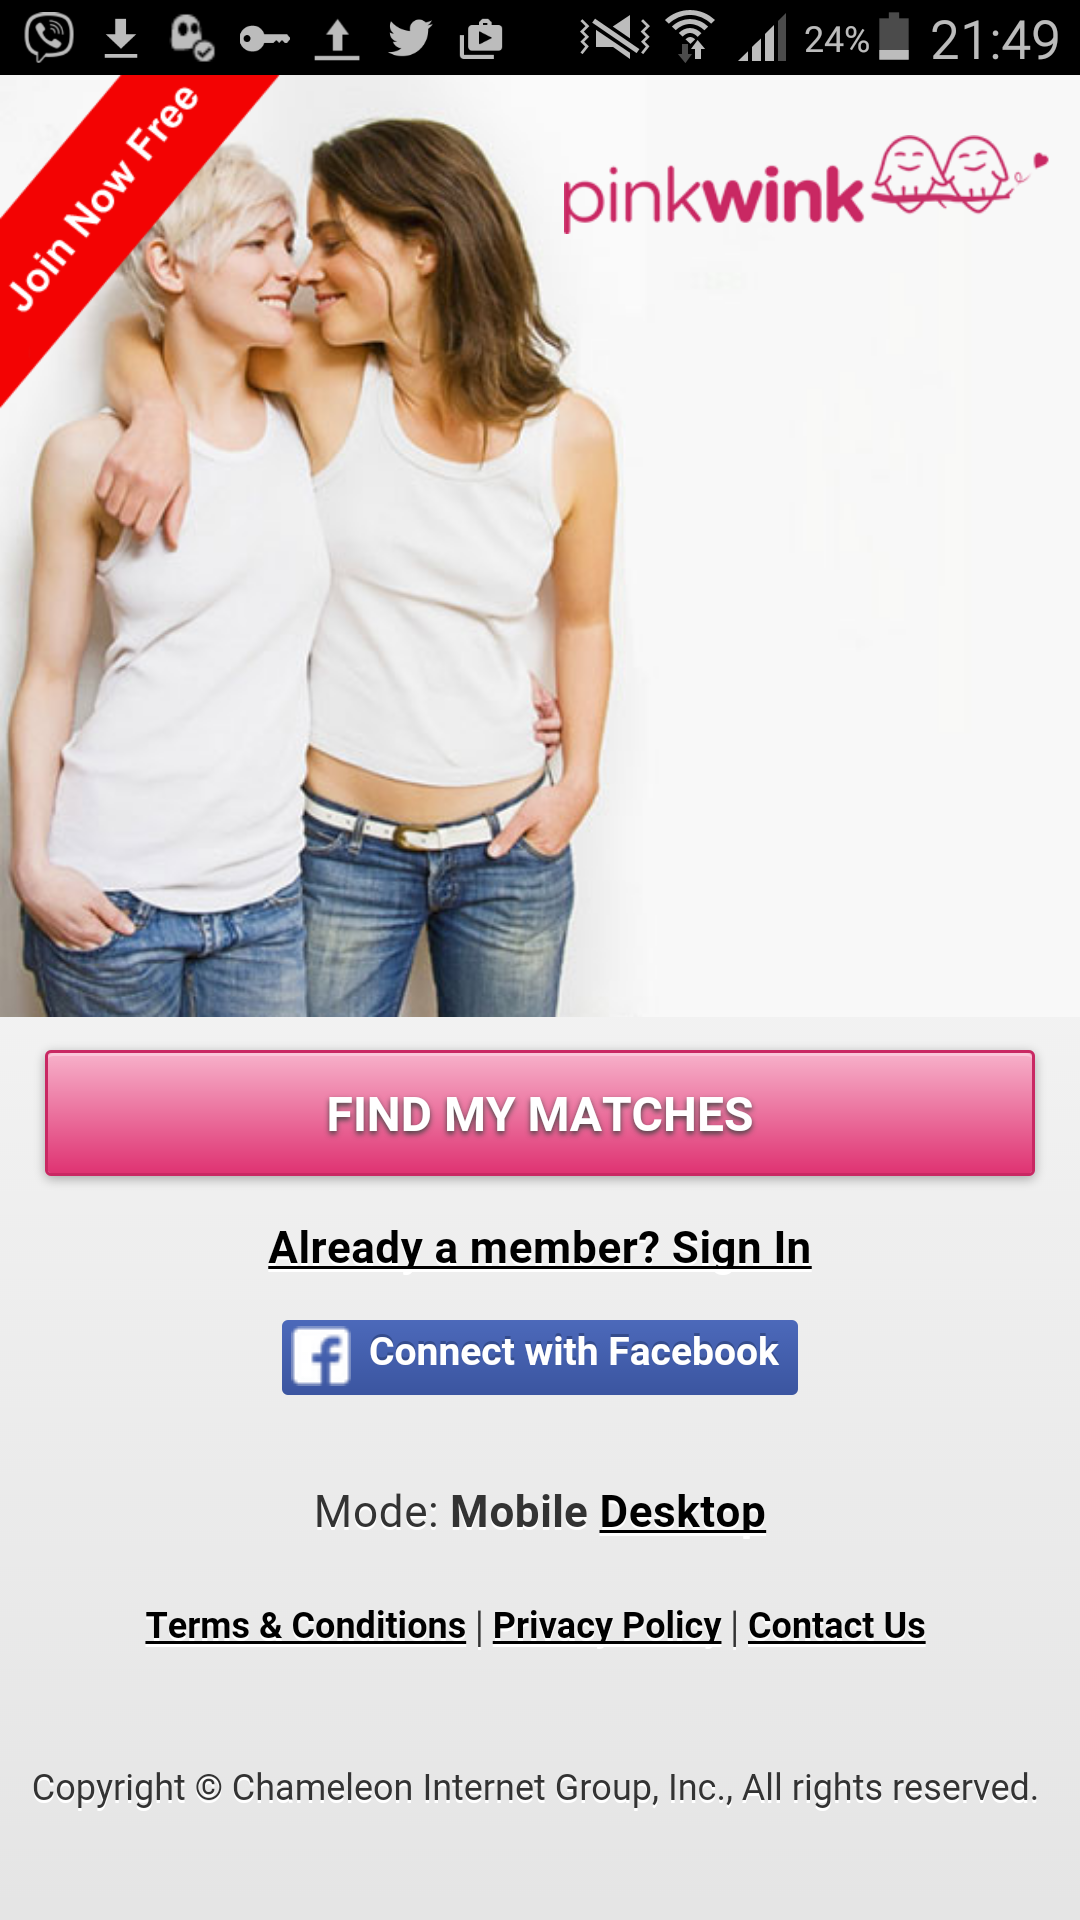 baxter lesbian dating site Trusted lesbian dating site for senior singles using 29 dimensions of compatibility, we connect single senior lesbians searching for true love join free.